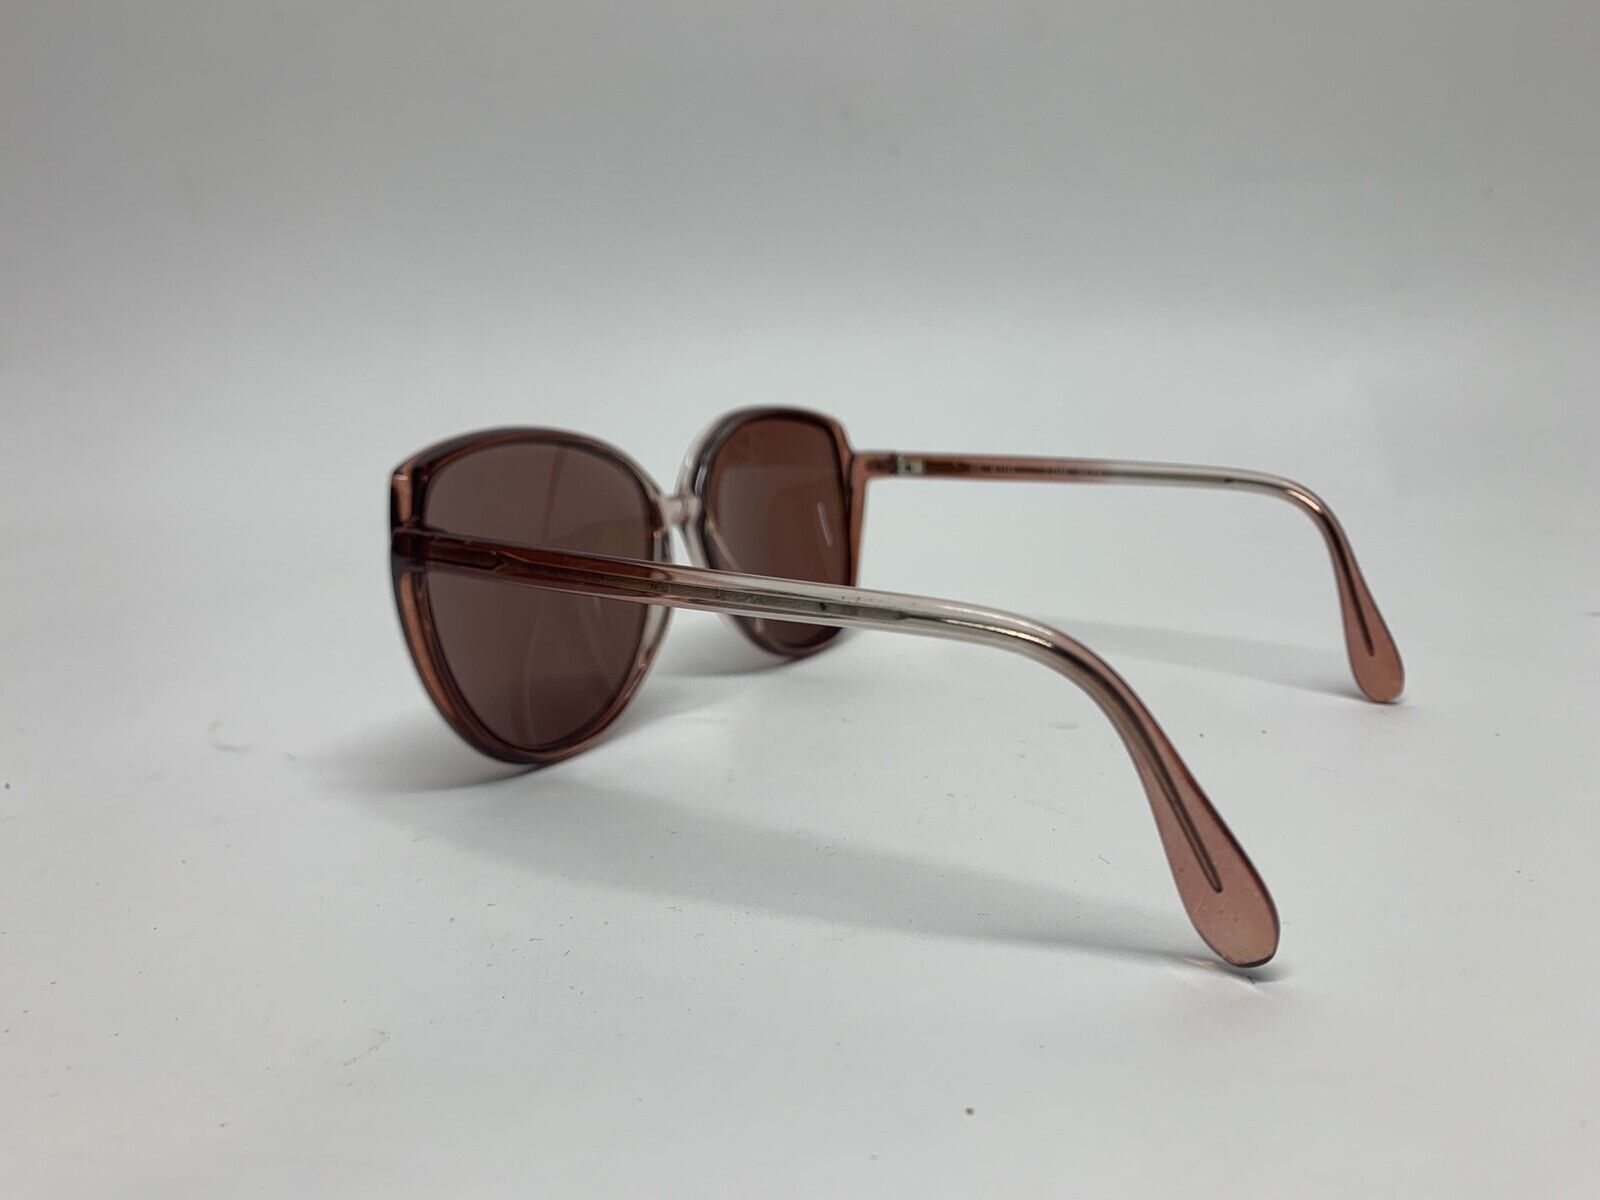 Vintage Austrian Sunglasses By Silhouette From Th… - image 6